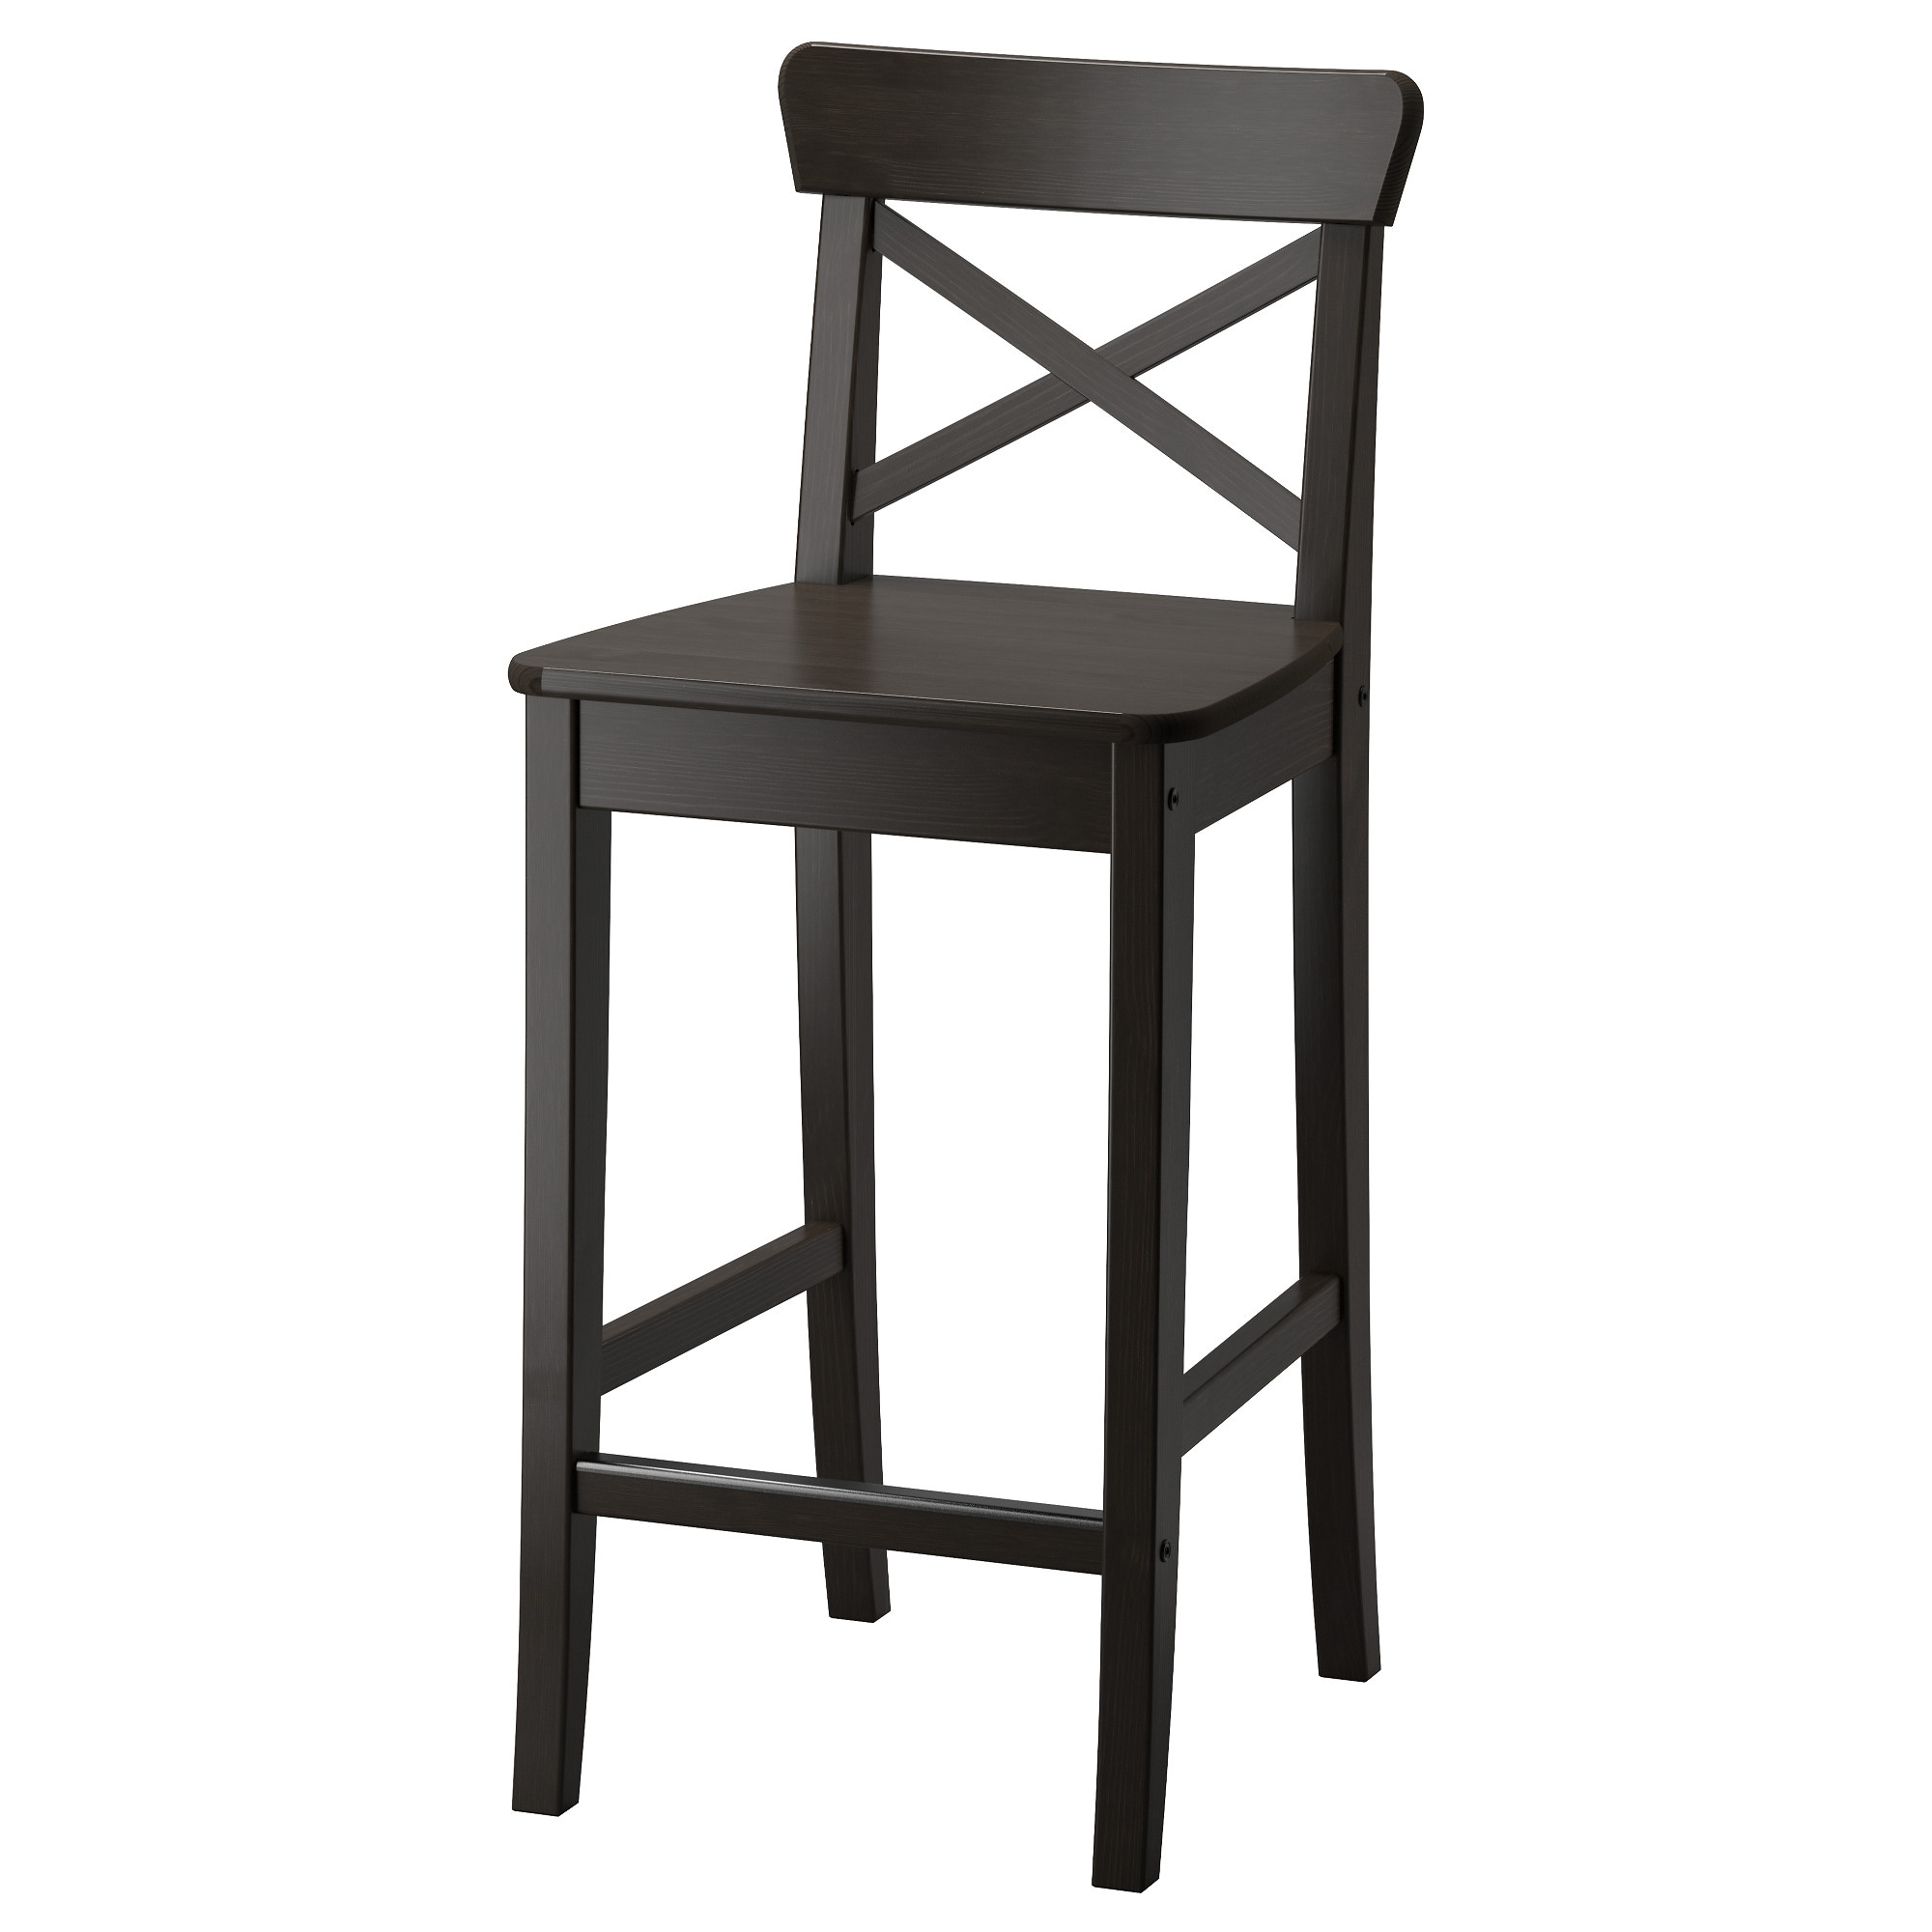 sc 1 st  Ikea & INGOLF Bar stool with backrest - IKEA islam-shia.org